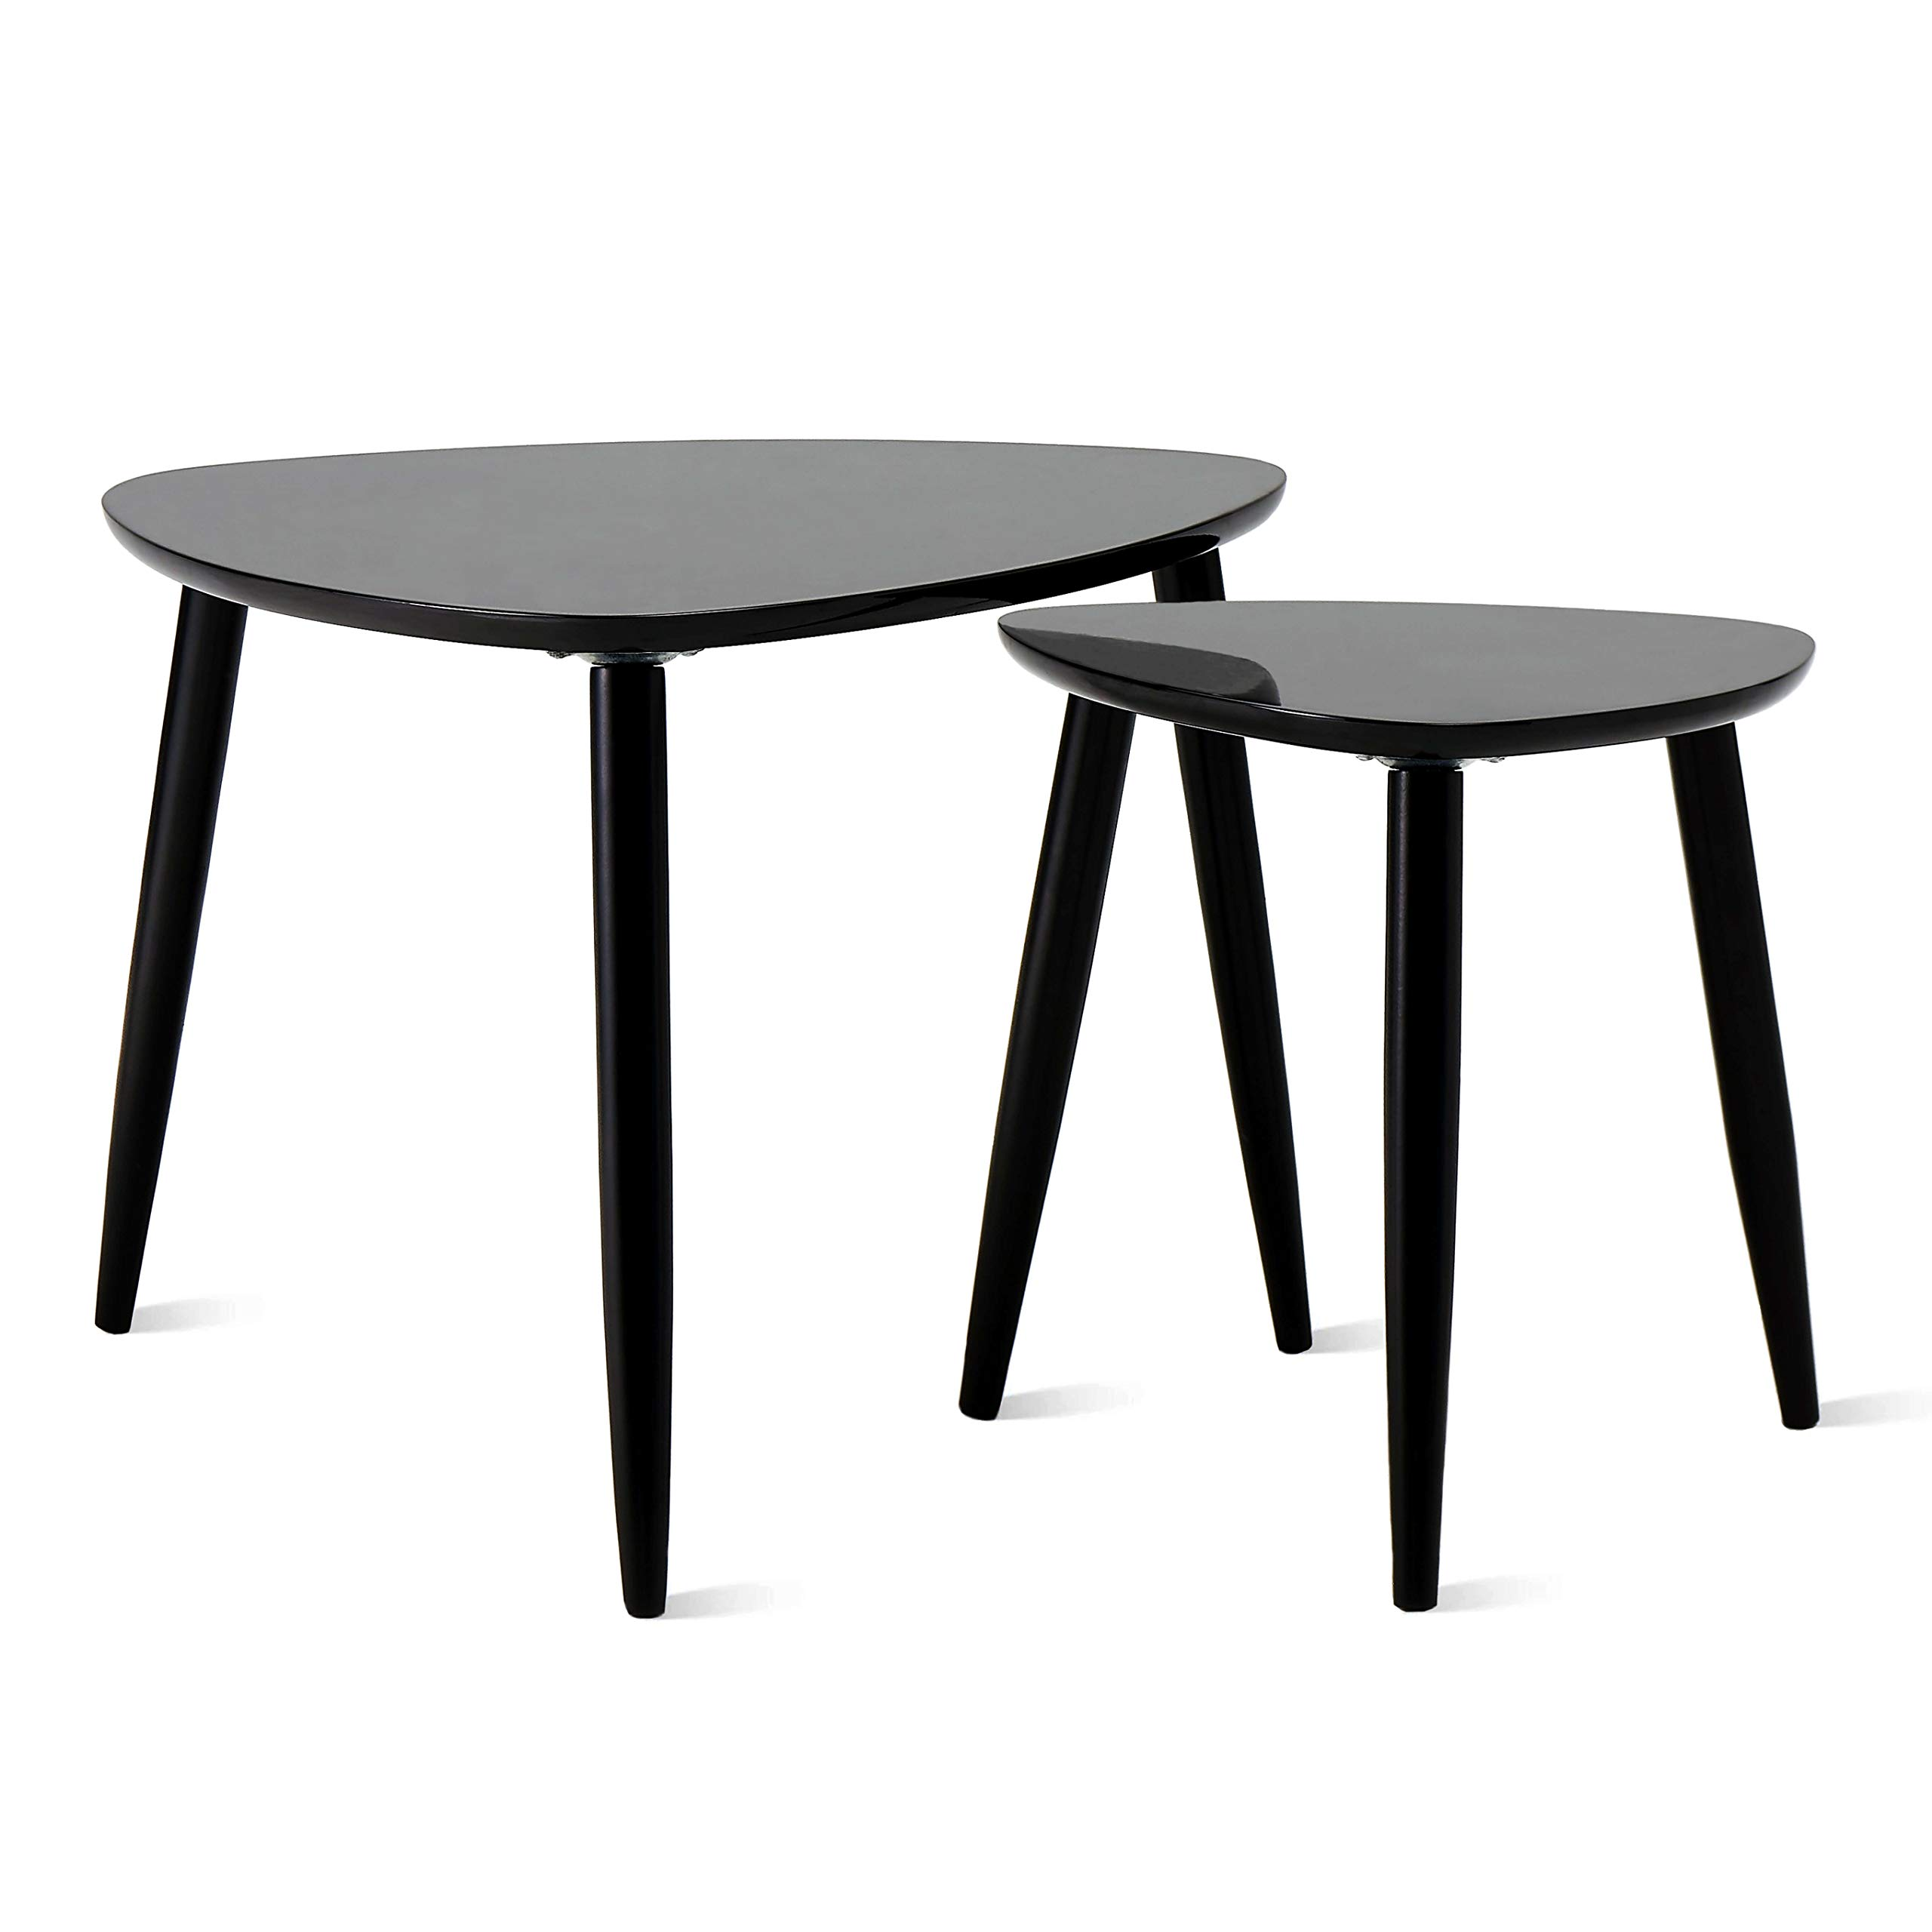 TaoHFE Nesting Table Coffee Tables for Living Room End Side Tables Sturdy and Environmental Material Durable Triangle Nesting Table Set (Set of 2, Black) by TaoHFE